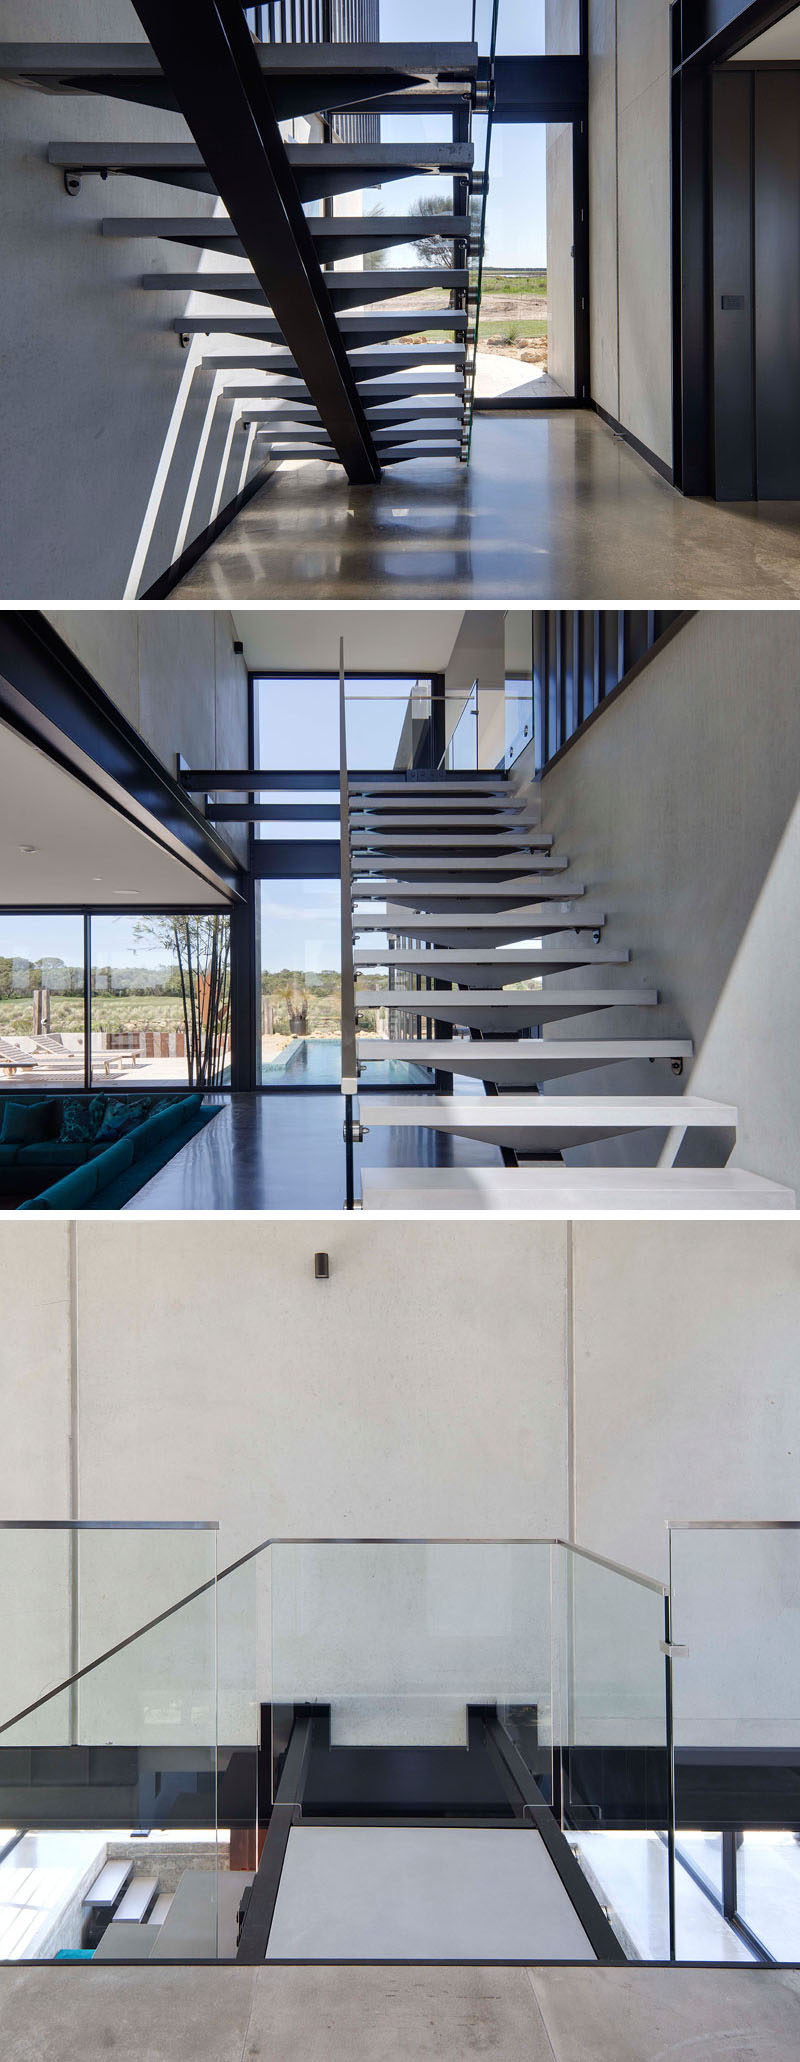 Light gray stair treads have been combined with black steel and a glass handrail to create a contemporary look for the staircase.